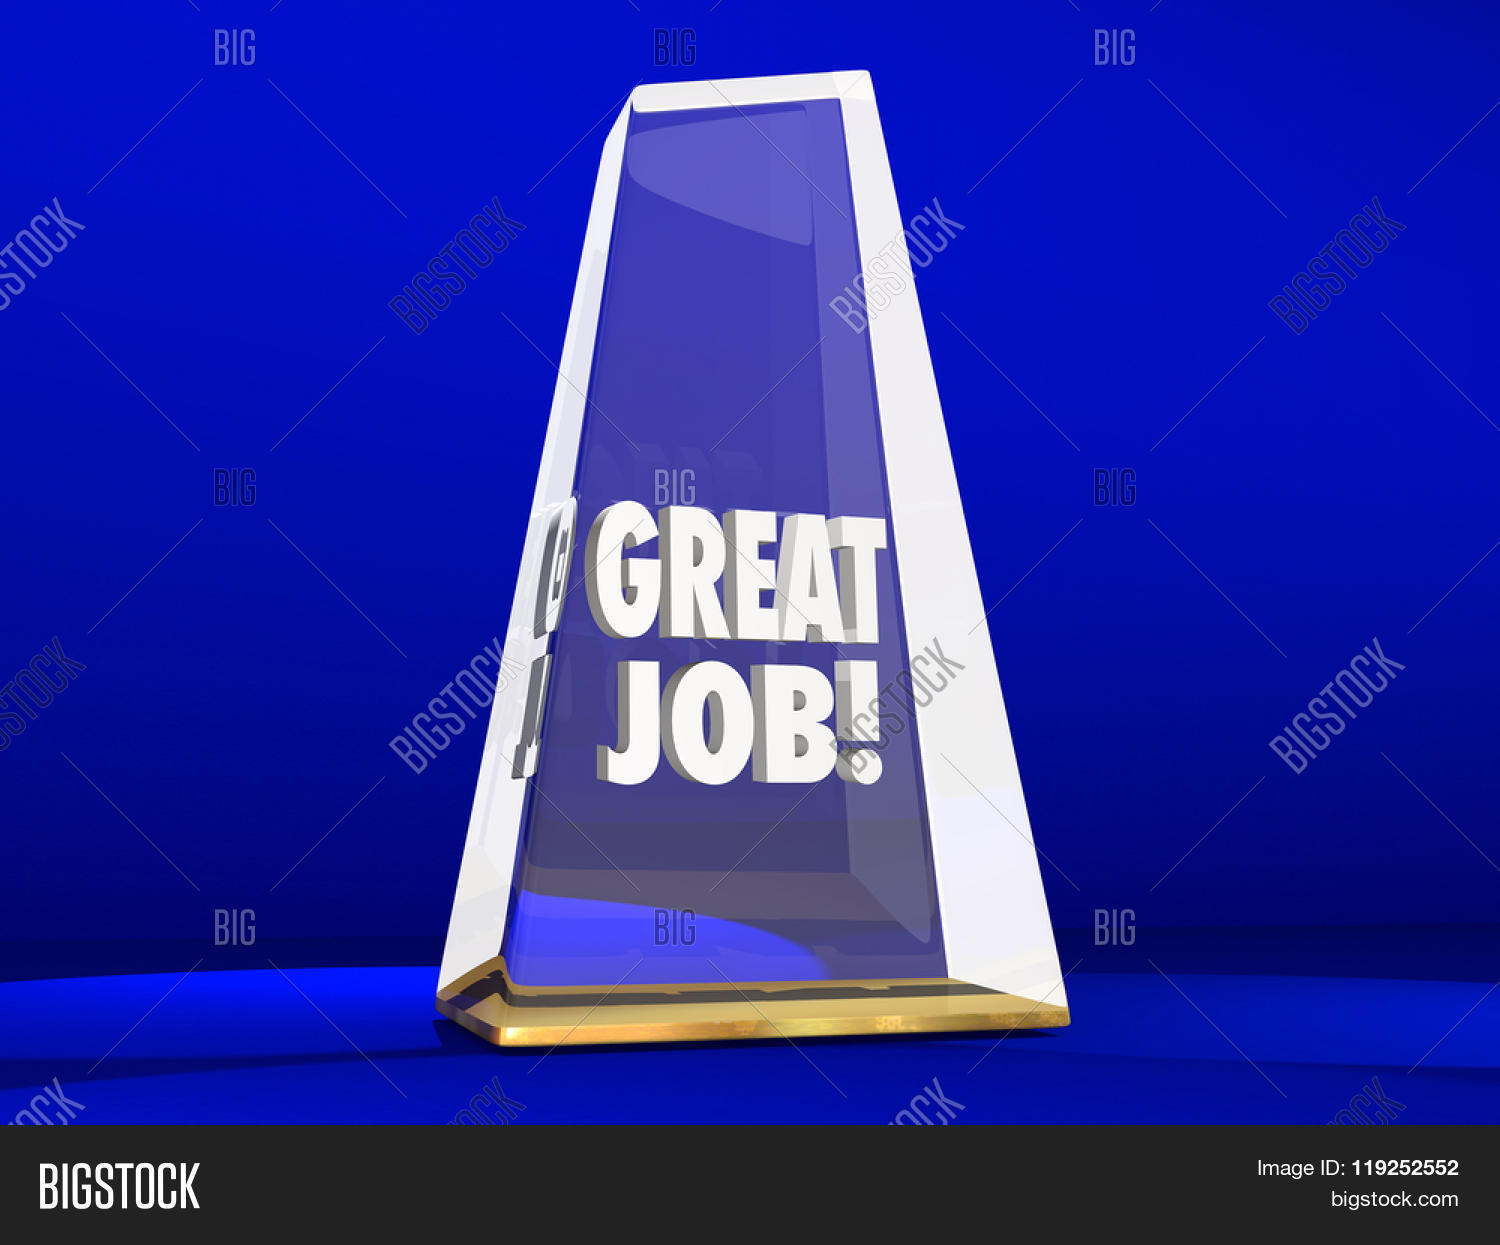 Great Job Good Performance Award Image & Photo | Bigstock